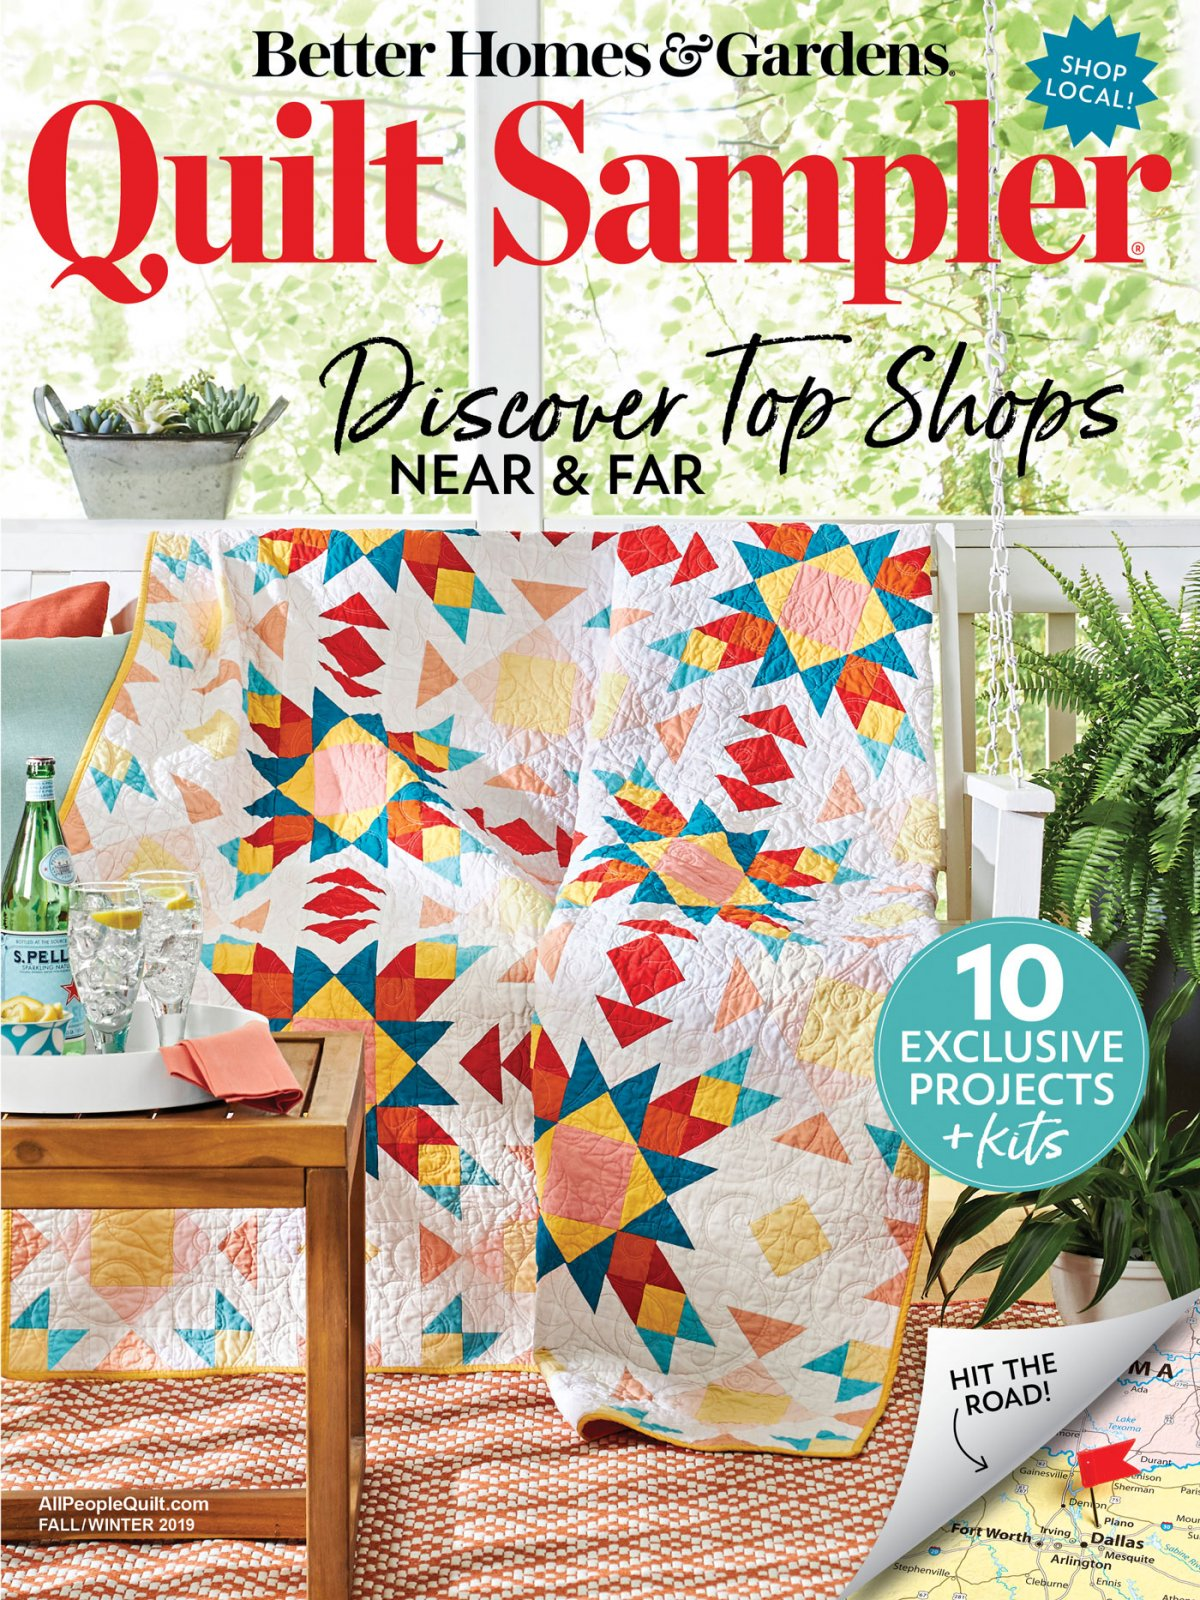 Quilt Sampler Magazine - Fall 2019